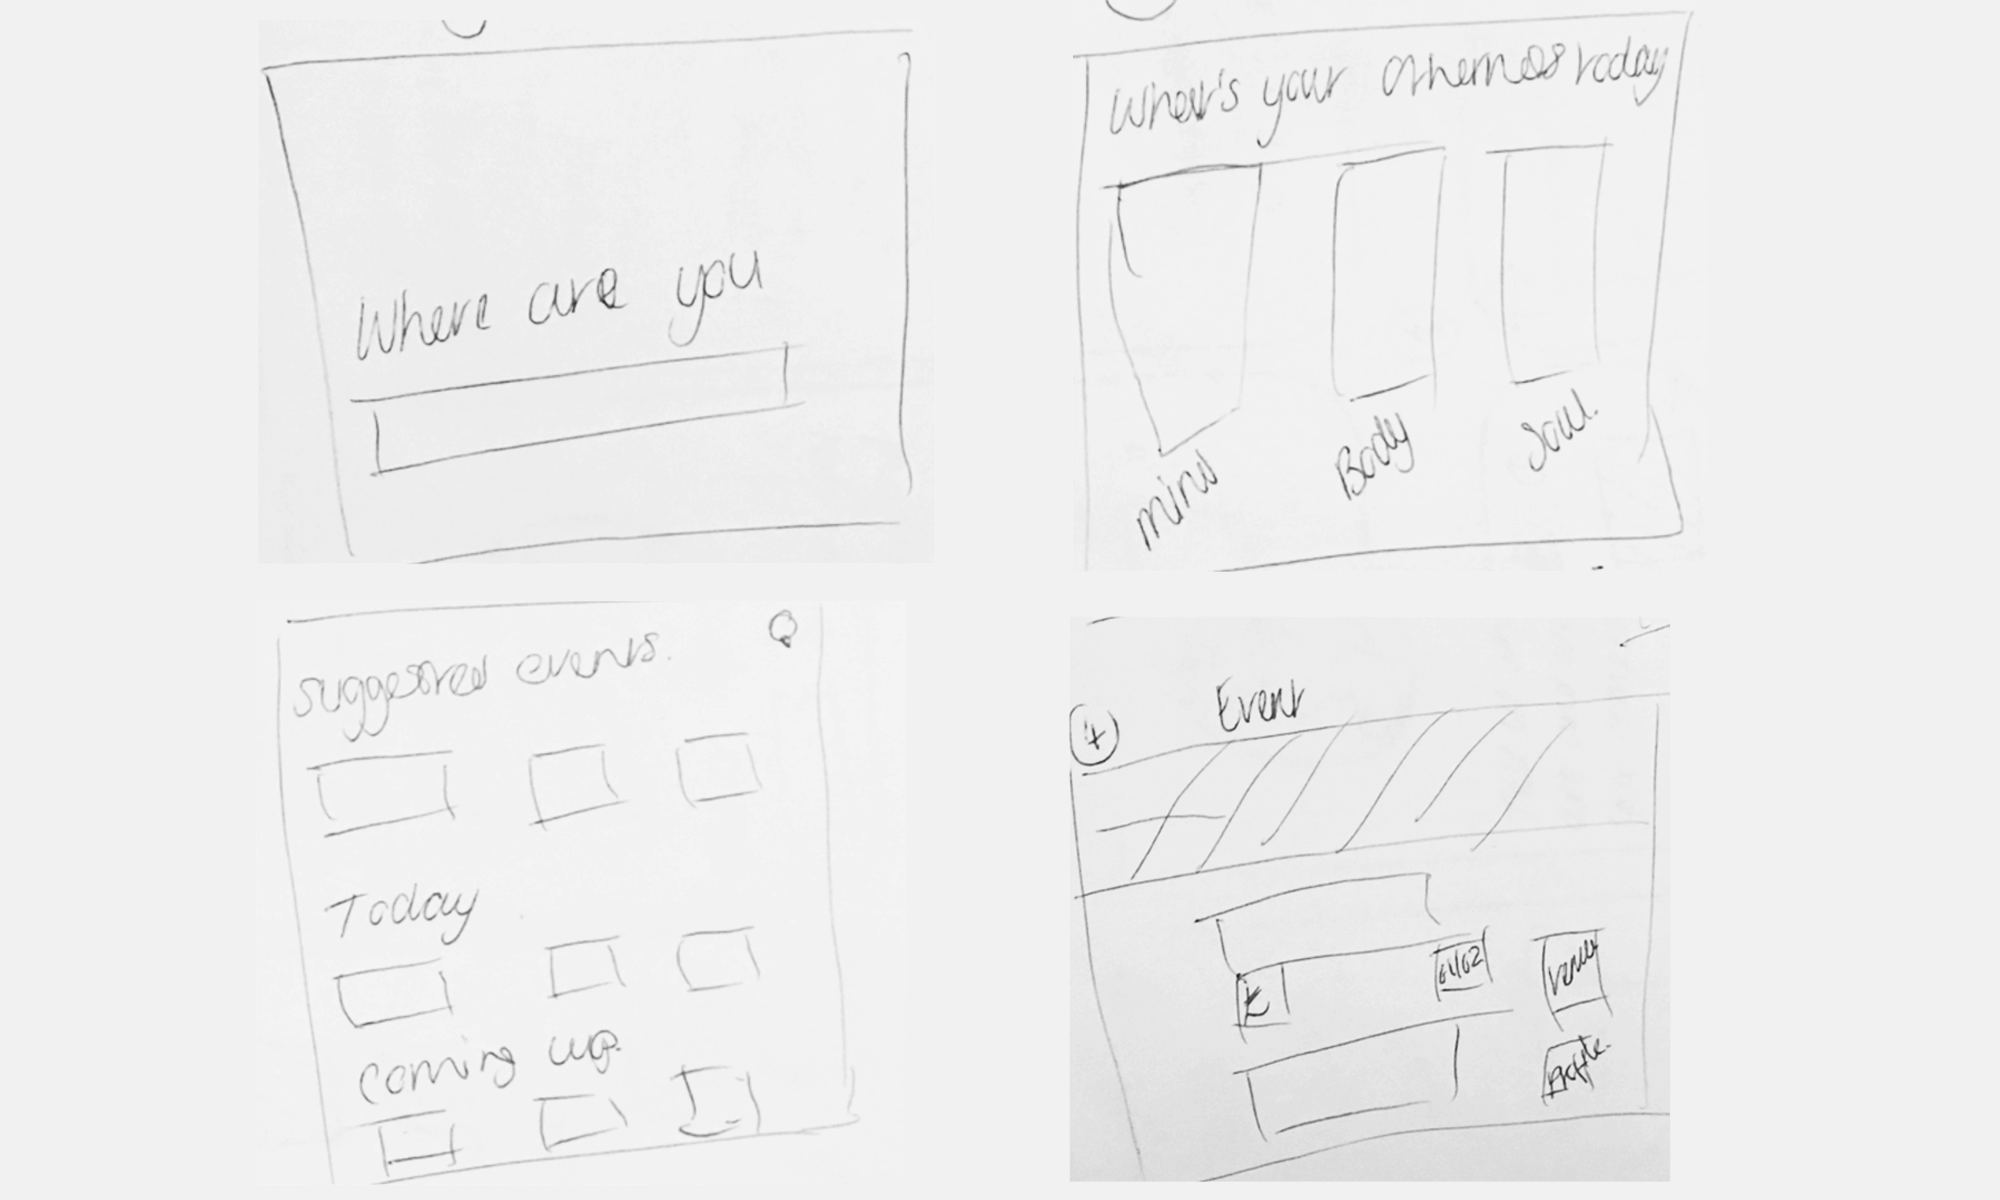 Initial website wireframes